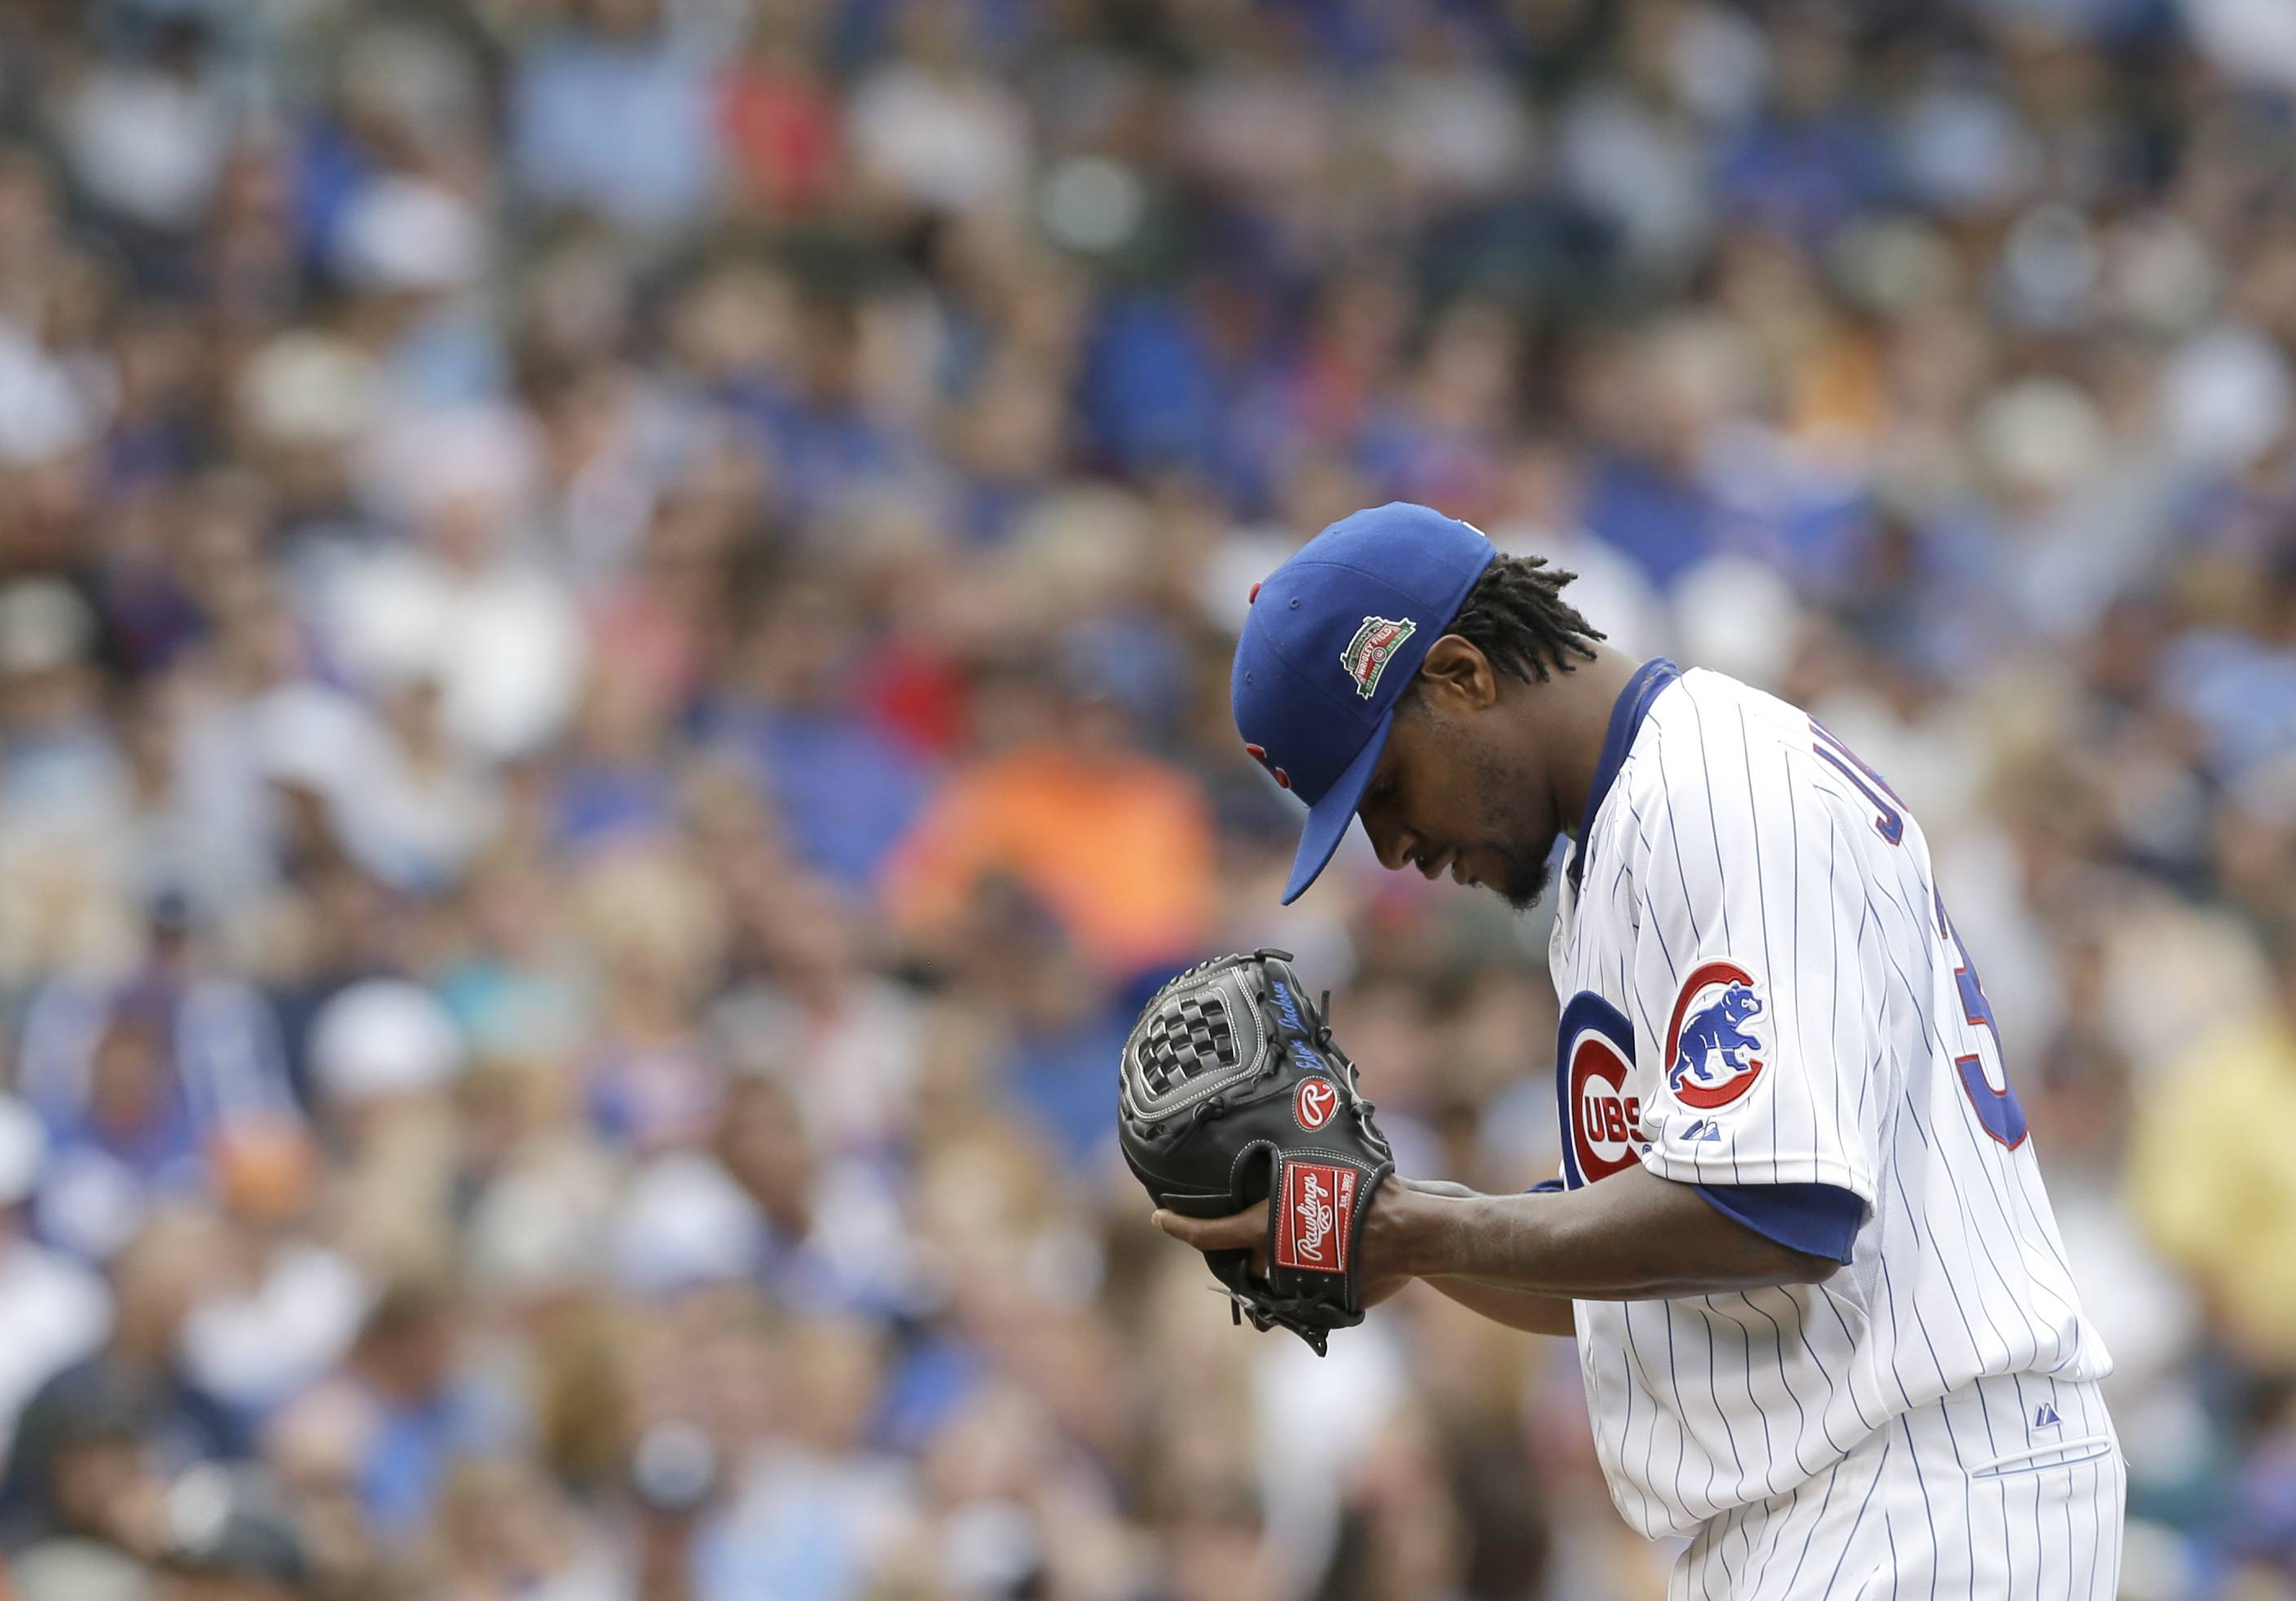 Edwin Jackson is 13-28 as a Cub since signing a four-year contract last season.